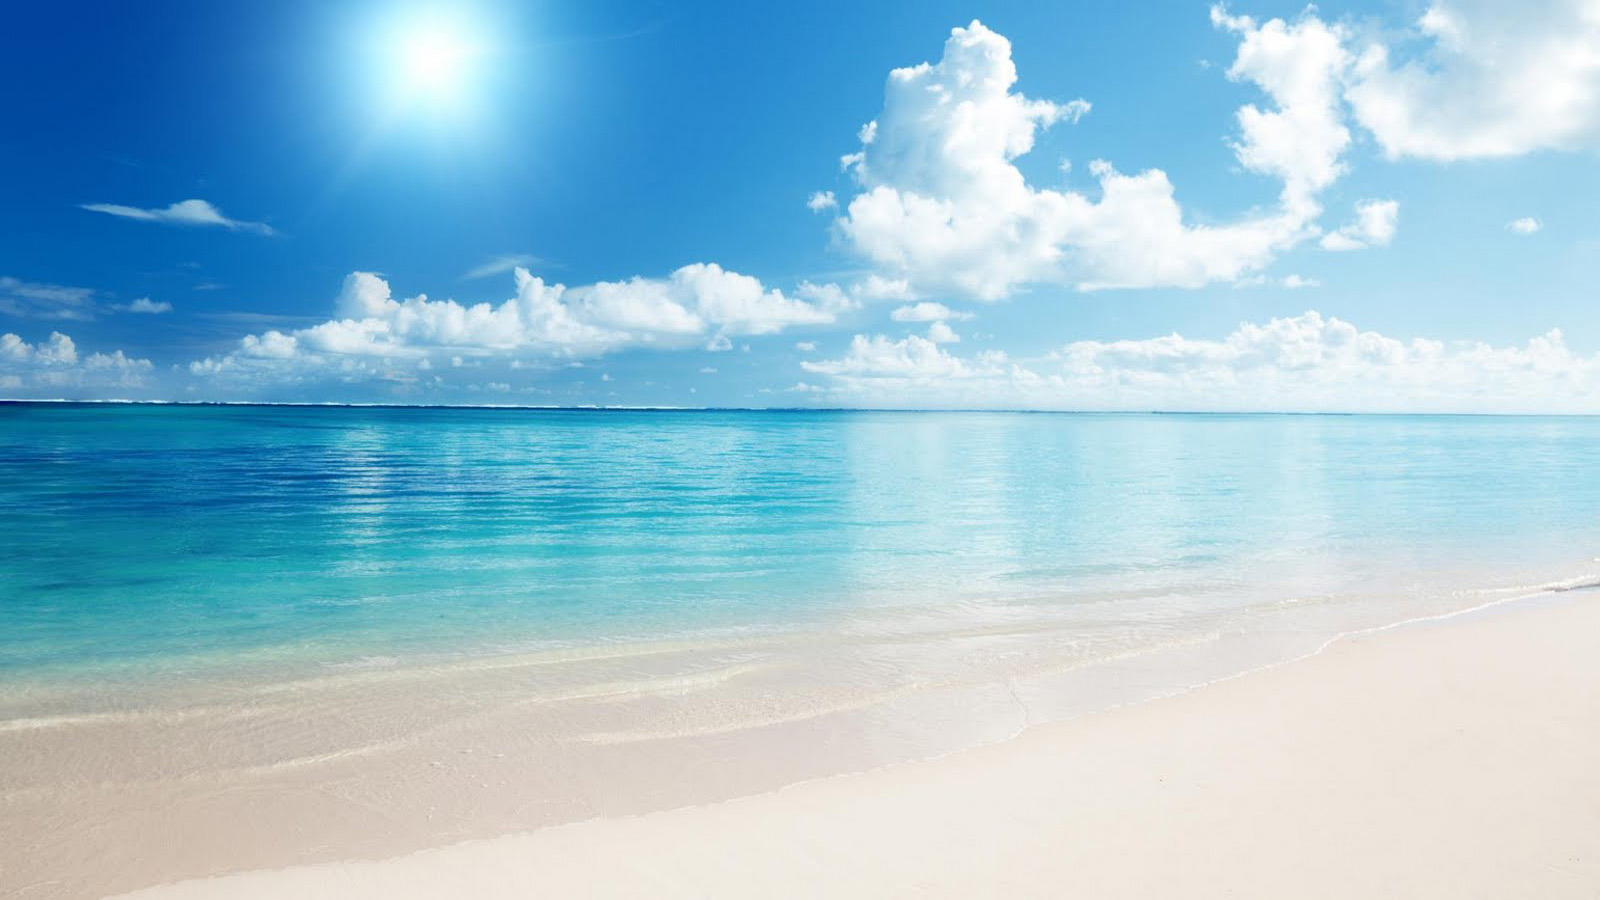 sunny beach wallpaper wallpapersafari